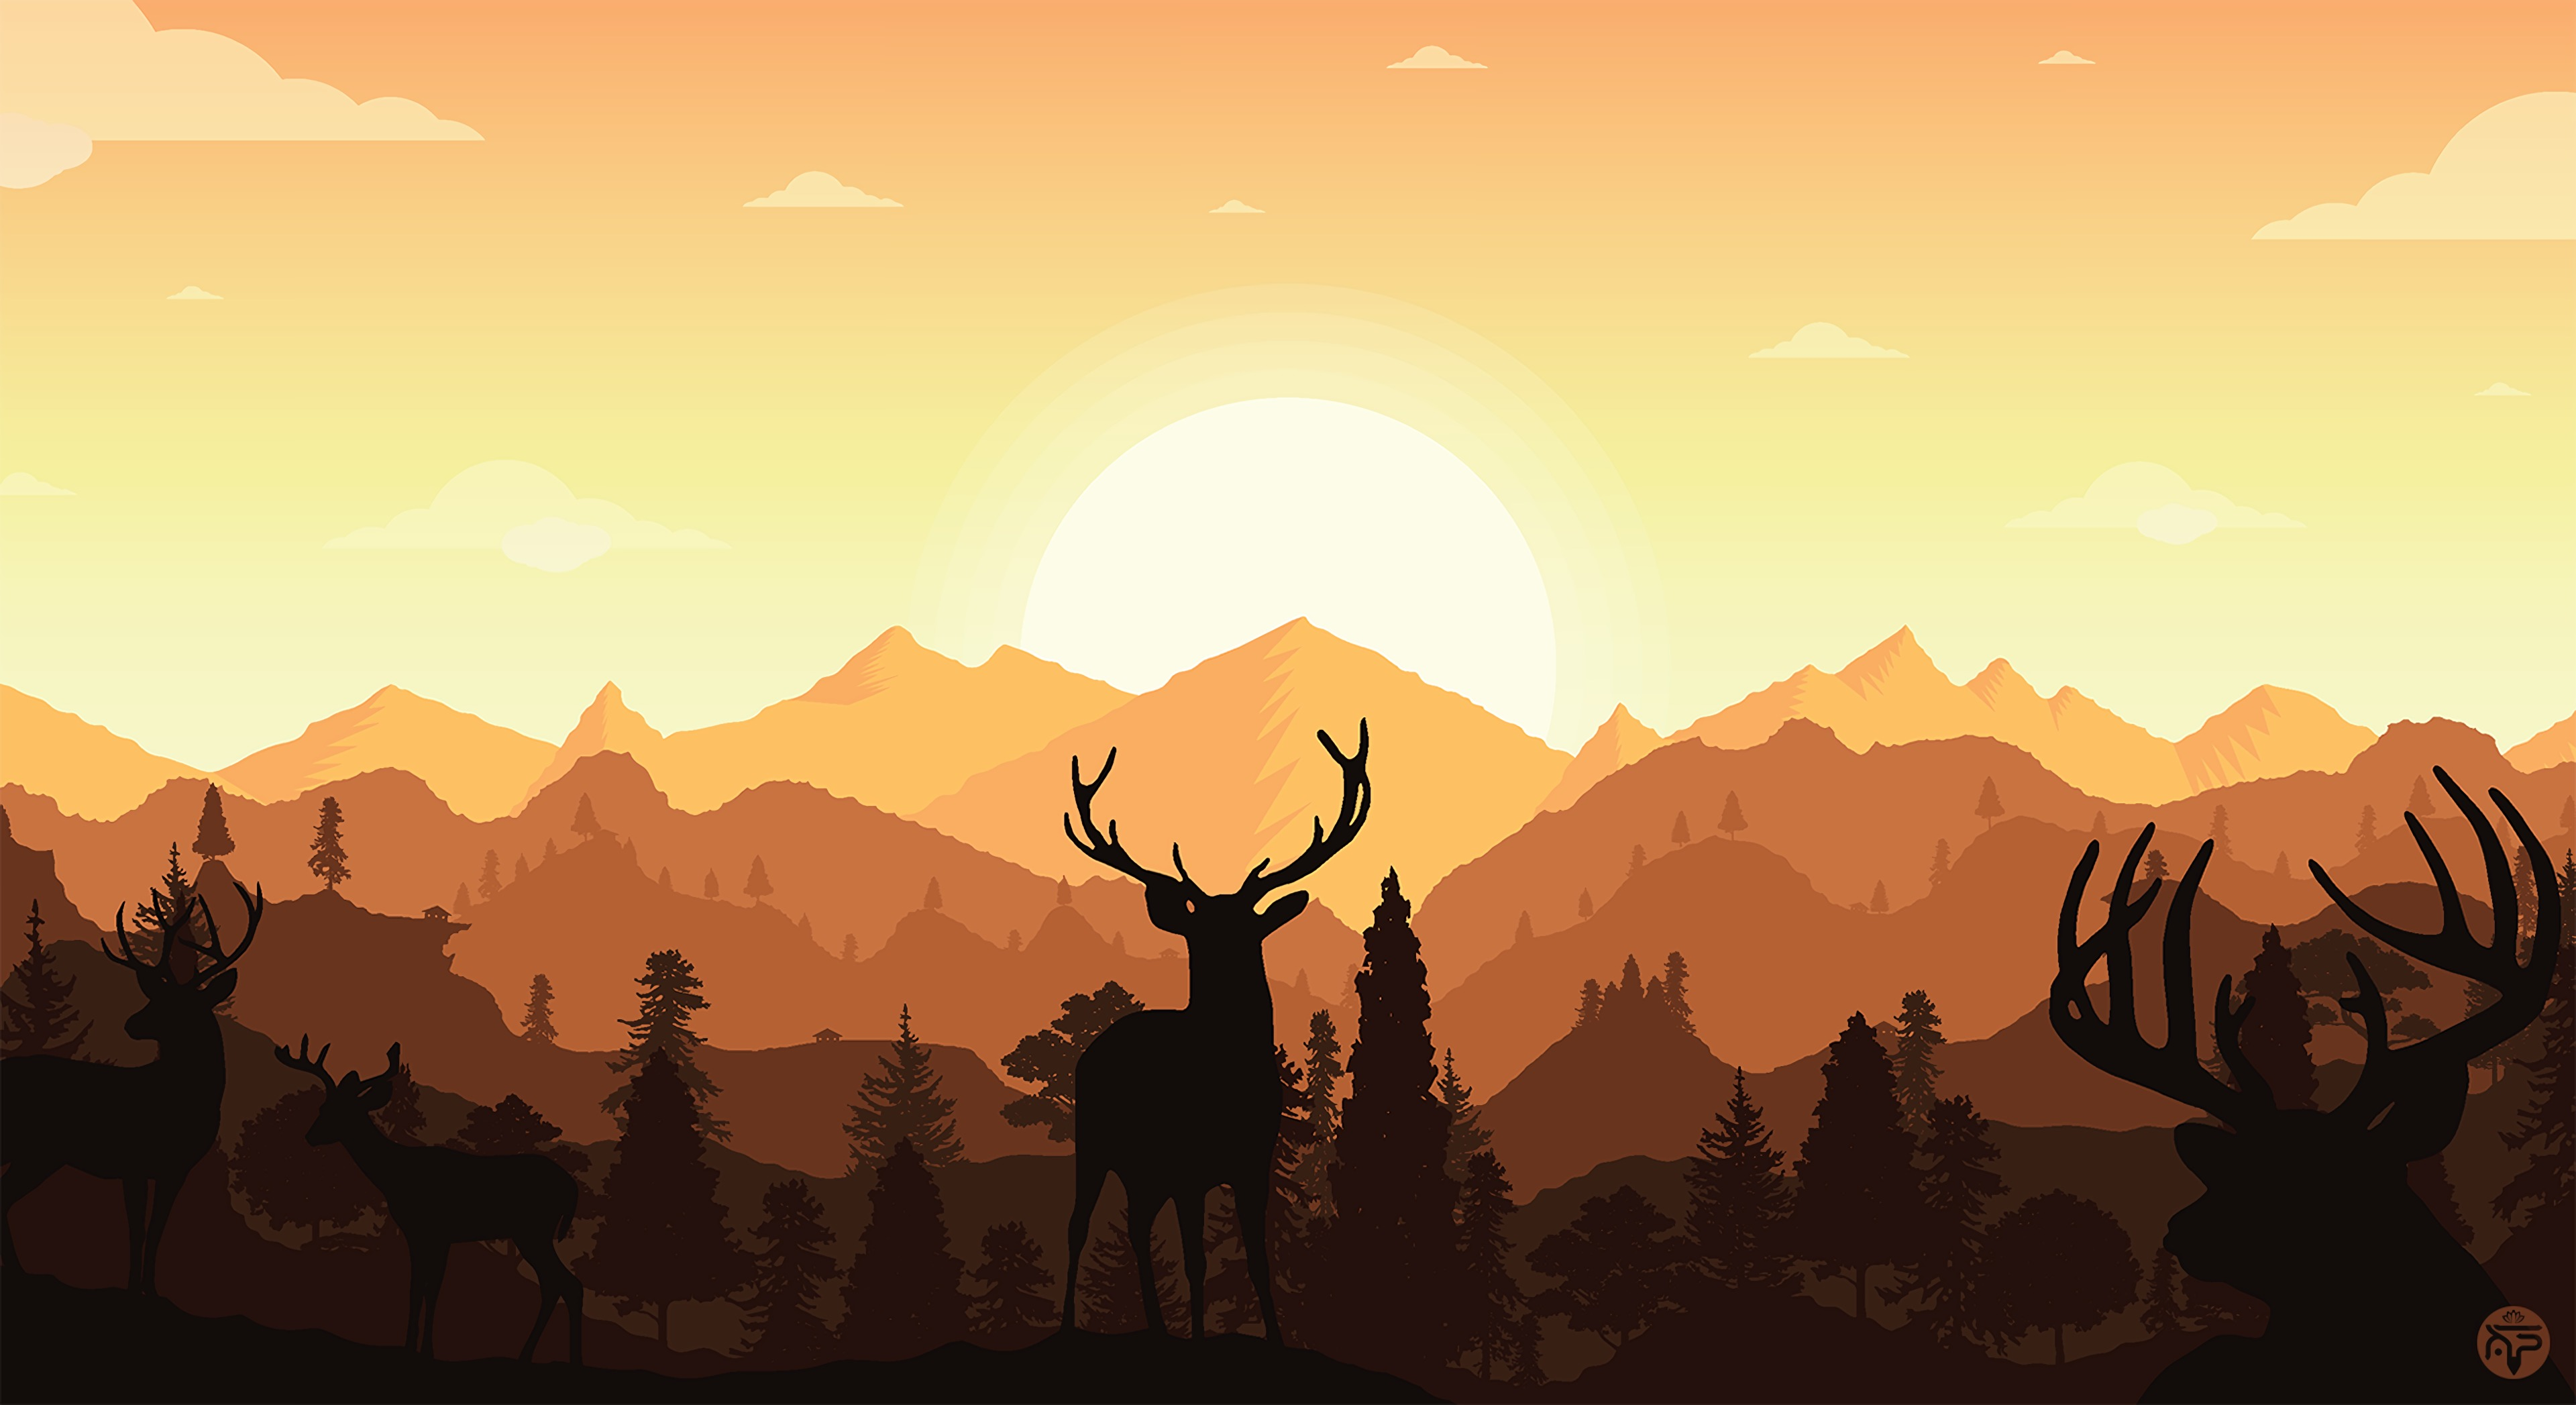 148475 download wallpaper Vector, Deers, Horns, Silhouette, Art, Mountains screensavers and pictures for free